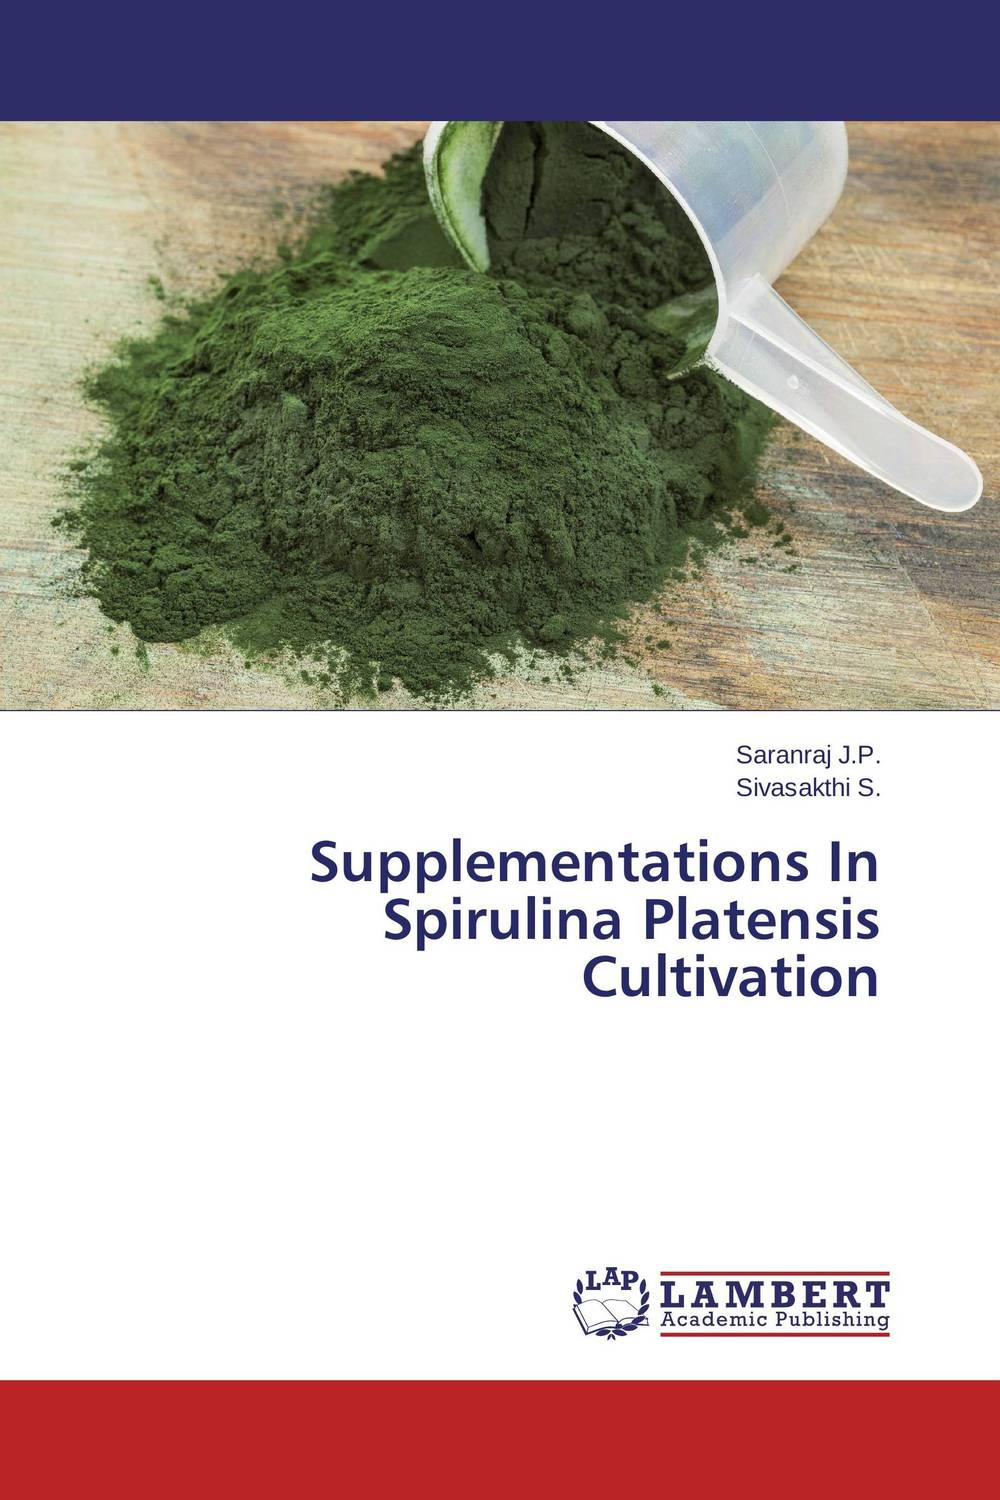 Supplementations In Spirulina Platensis Cultivation 100 pure and natural spirulina extract powder 98 phycocyanin